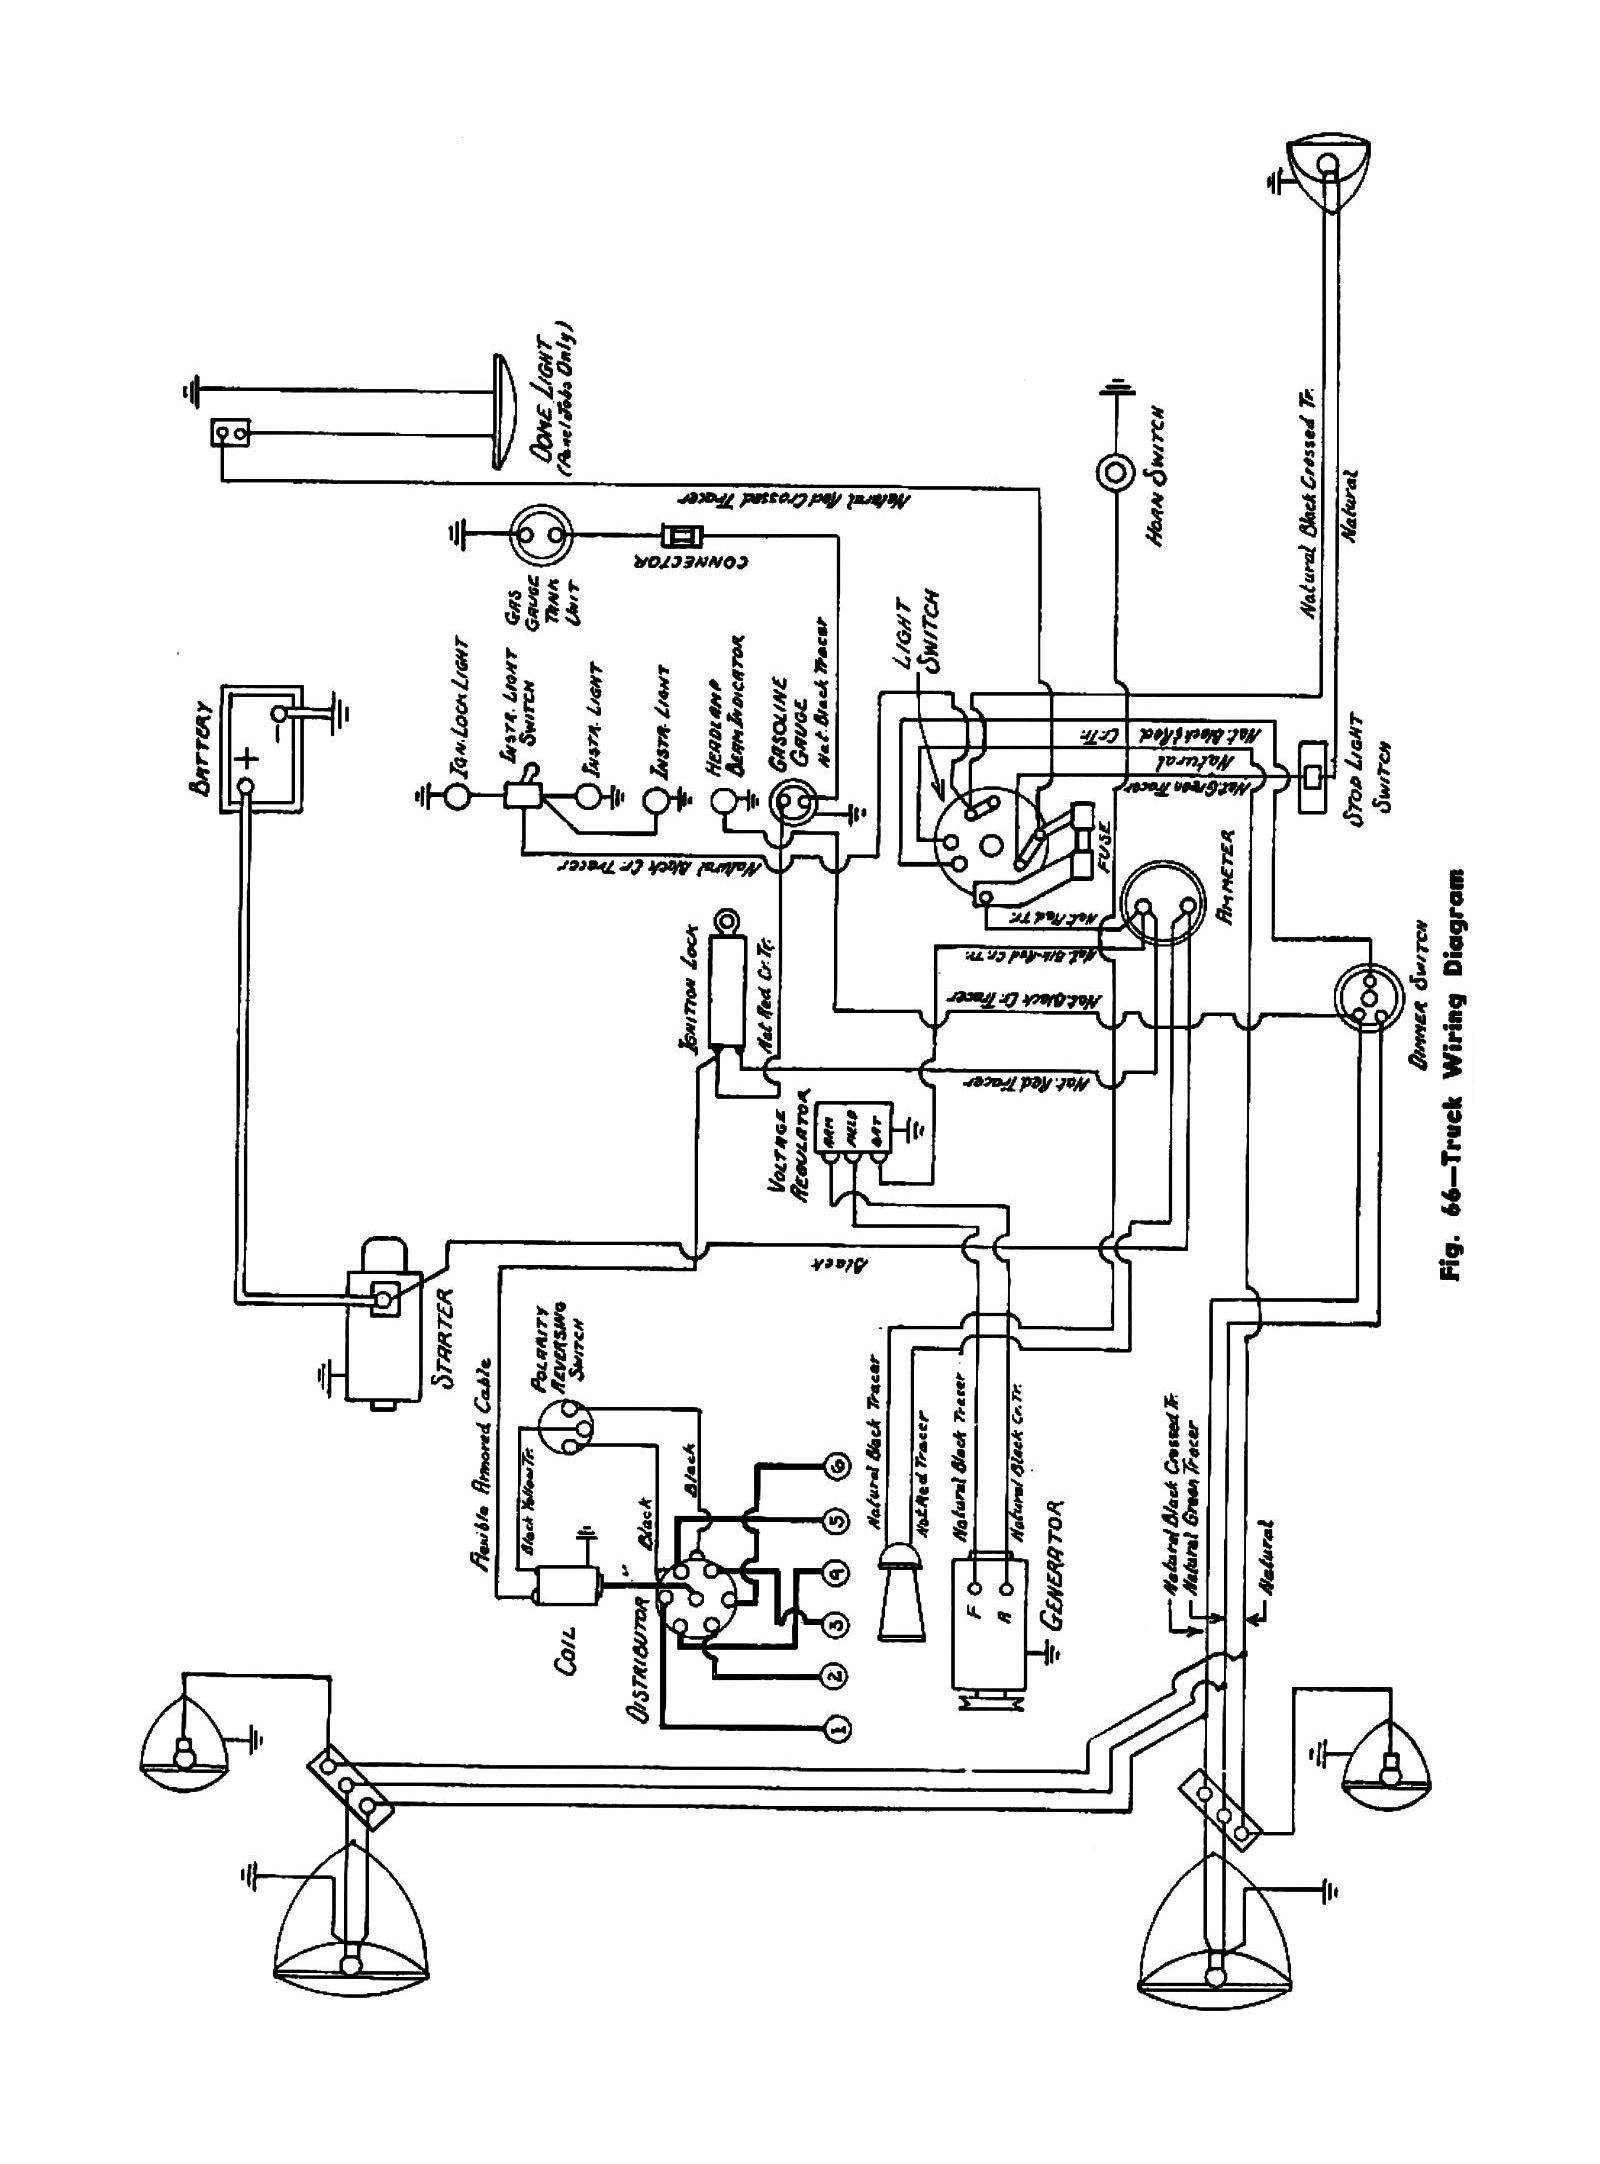 Chevy Wiring Diagrams Schematic Shows Typical Diagram 1999 Reference 1945 Truck